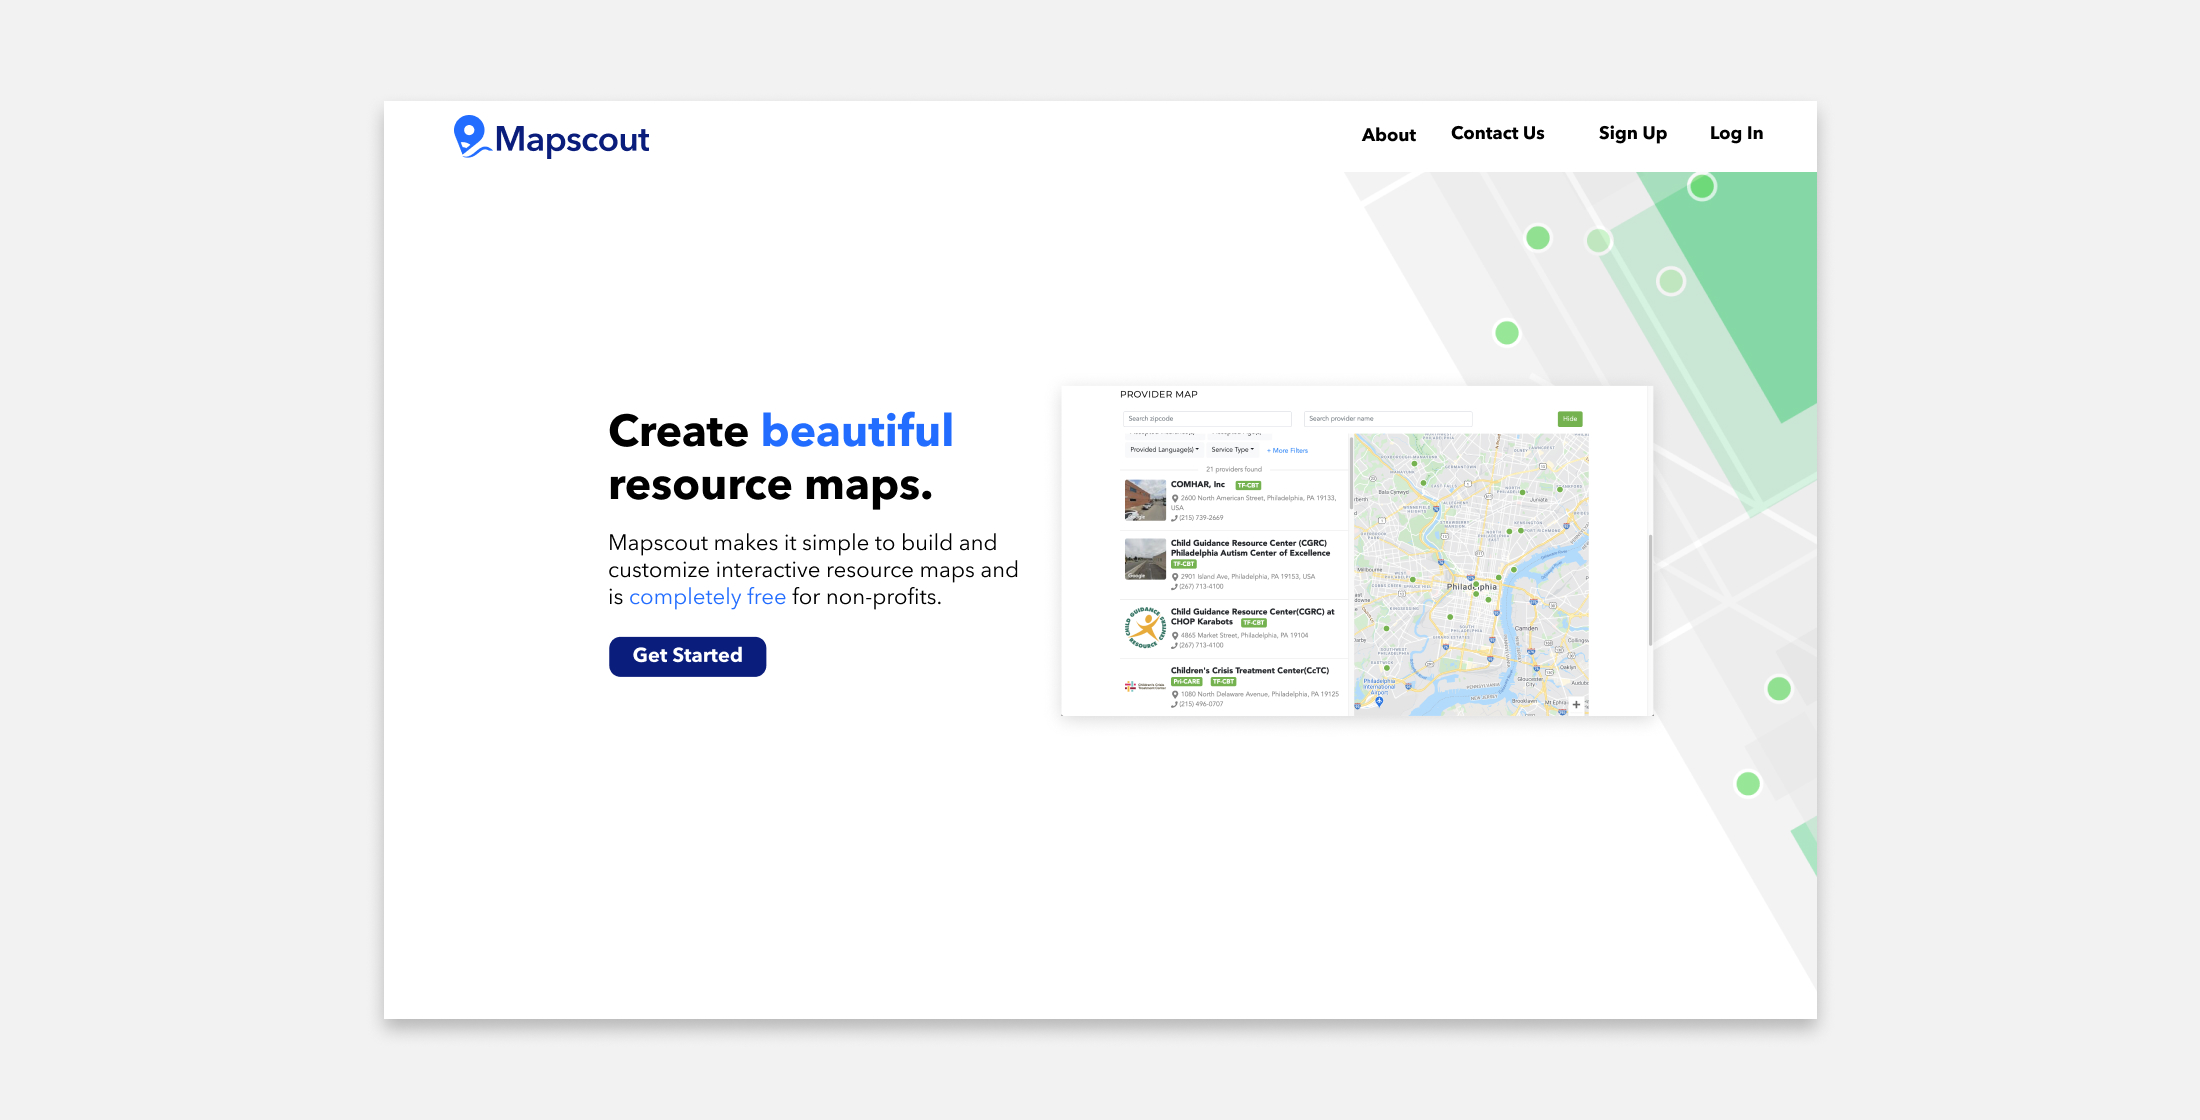 Mapscout Fall 2020: Homepage Feature